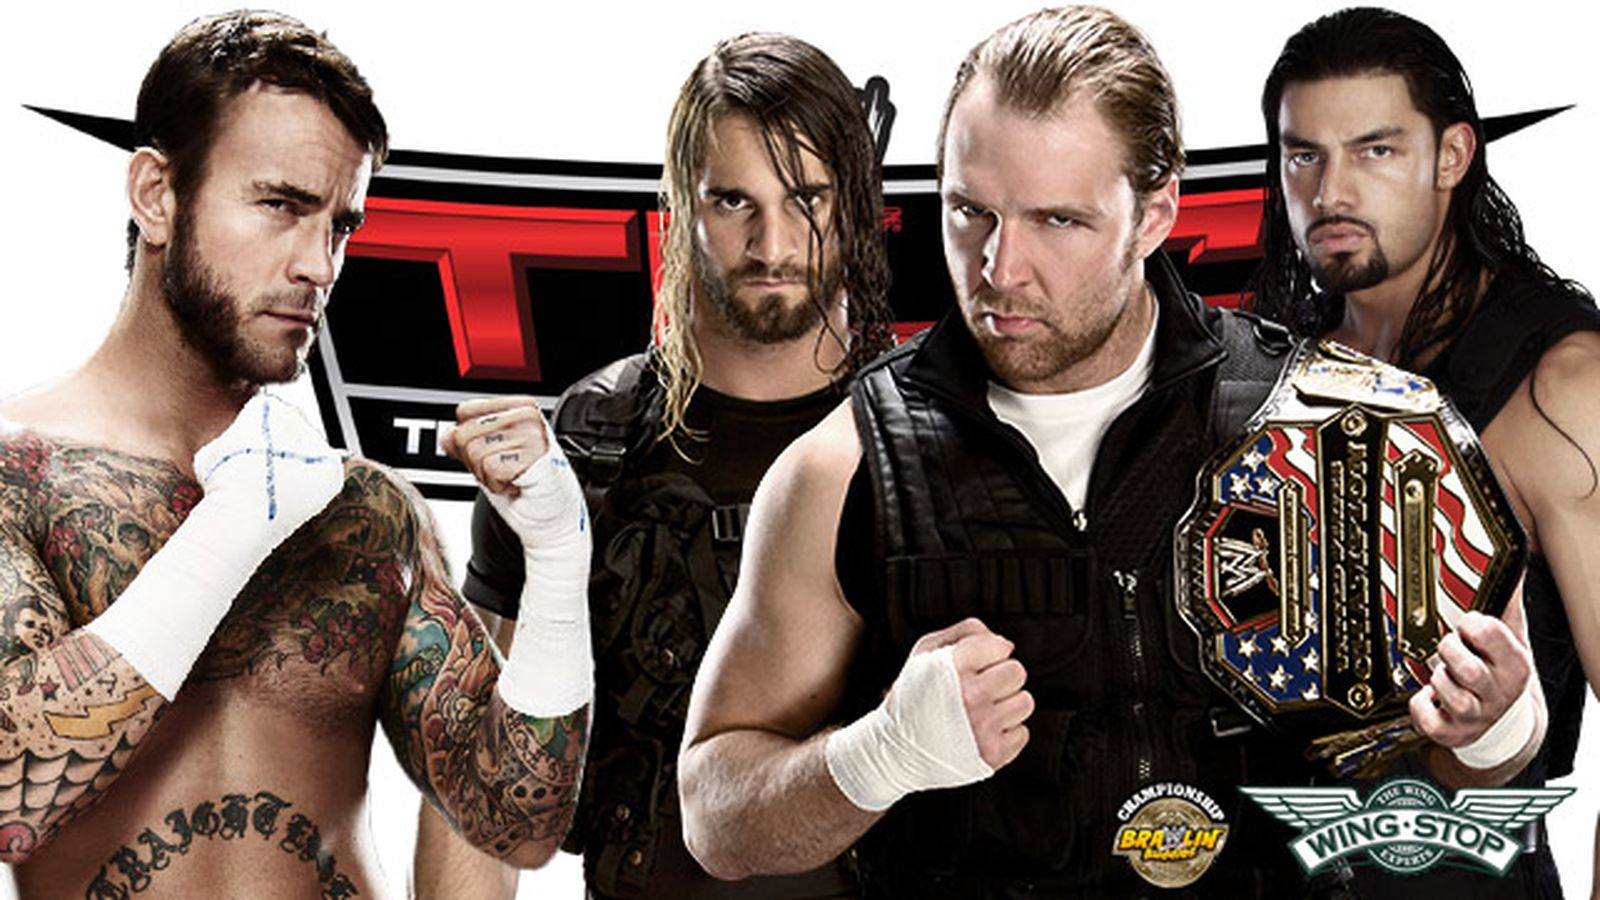 Wwe tables ladders and chairs 2013 poster - The Shield Handicap Match Added To Tlc